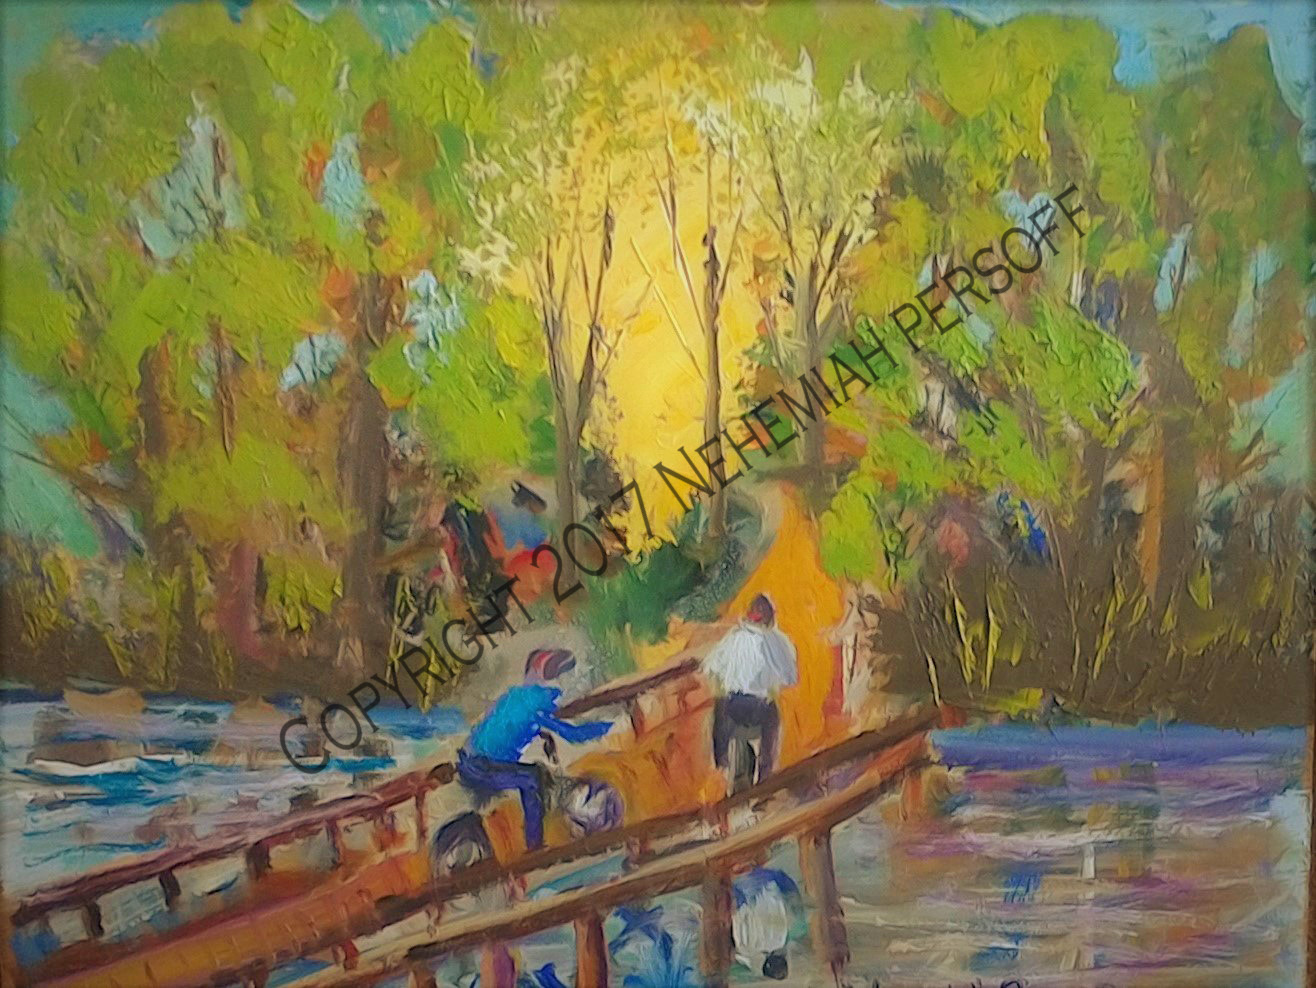 """Bicycling Into The Woods"", Pallet knife and brush, Oil on Plywood (20x24) $7500"